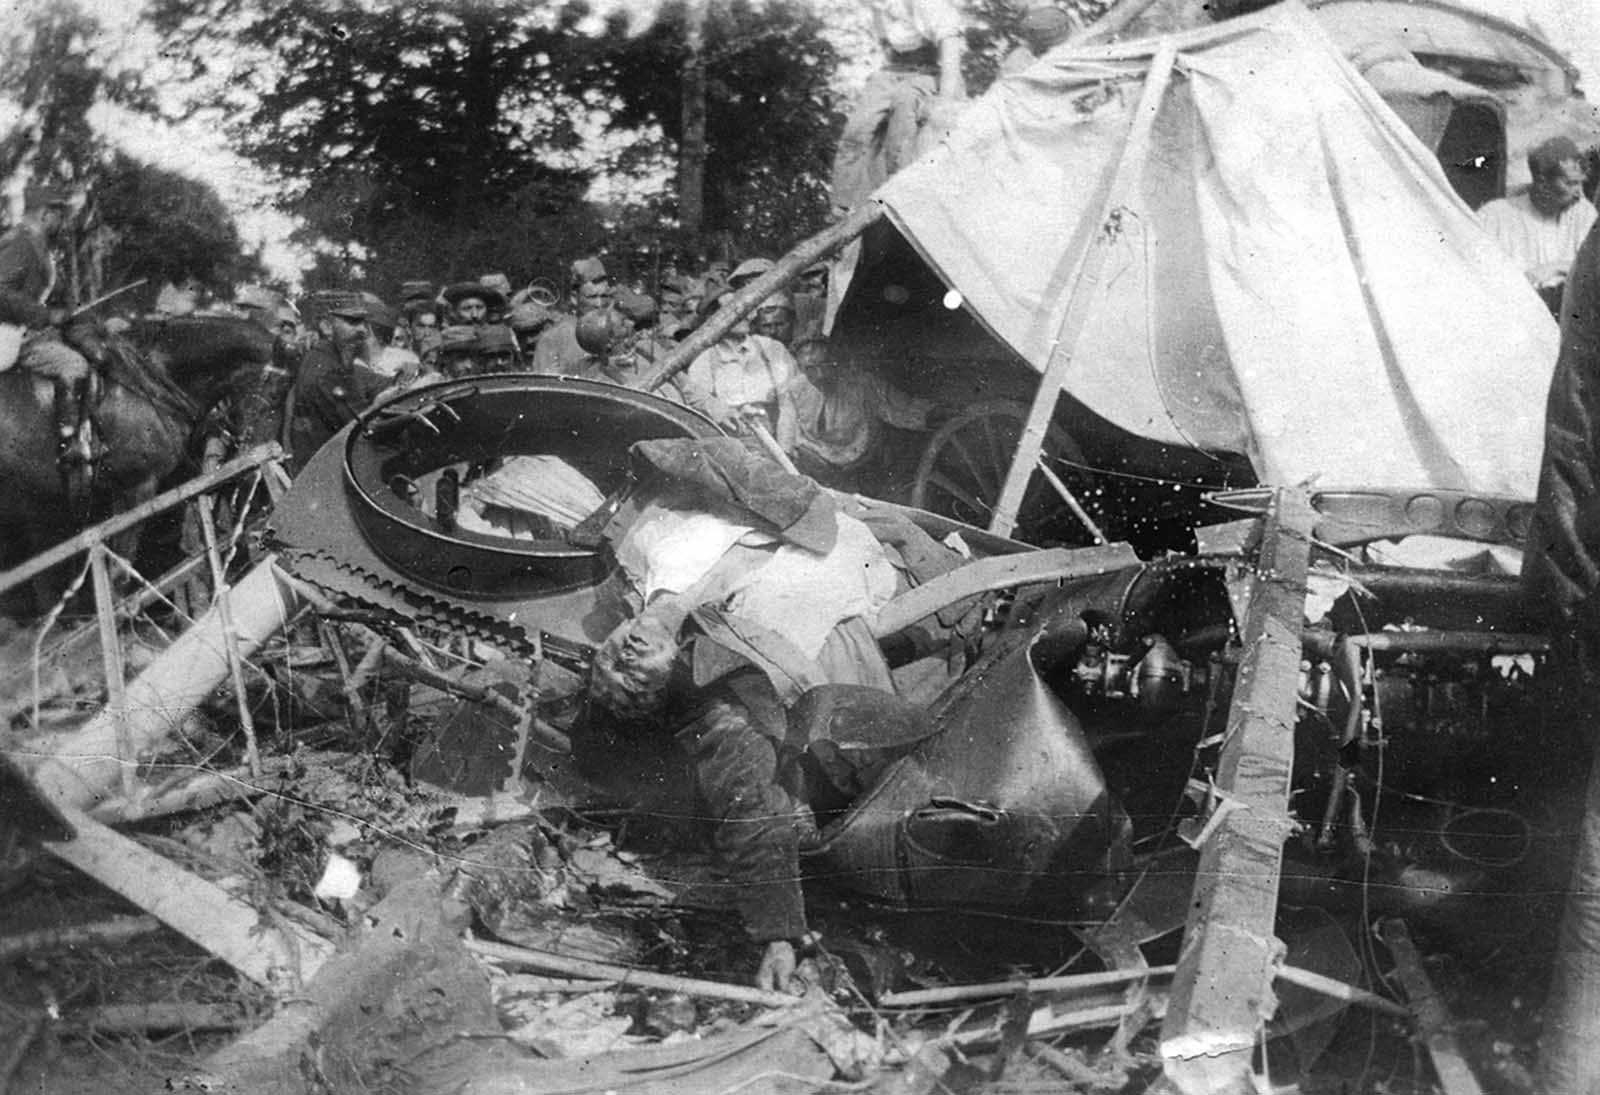 A German pilot lies dead in his crashed airplane in France, in 1918.